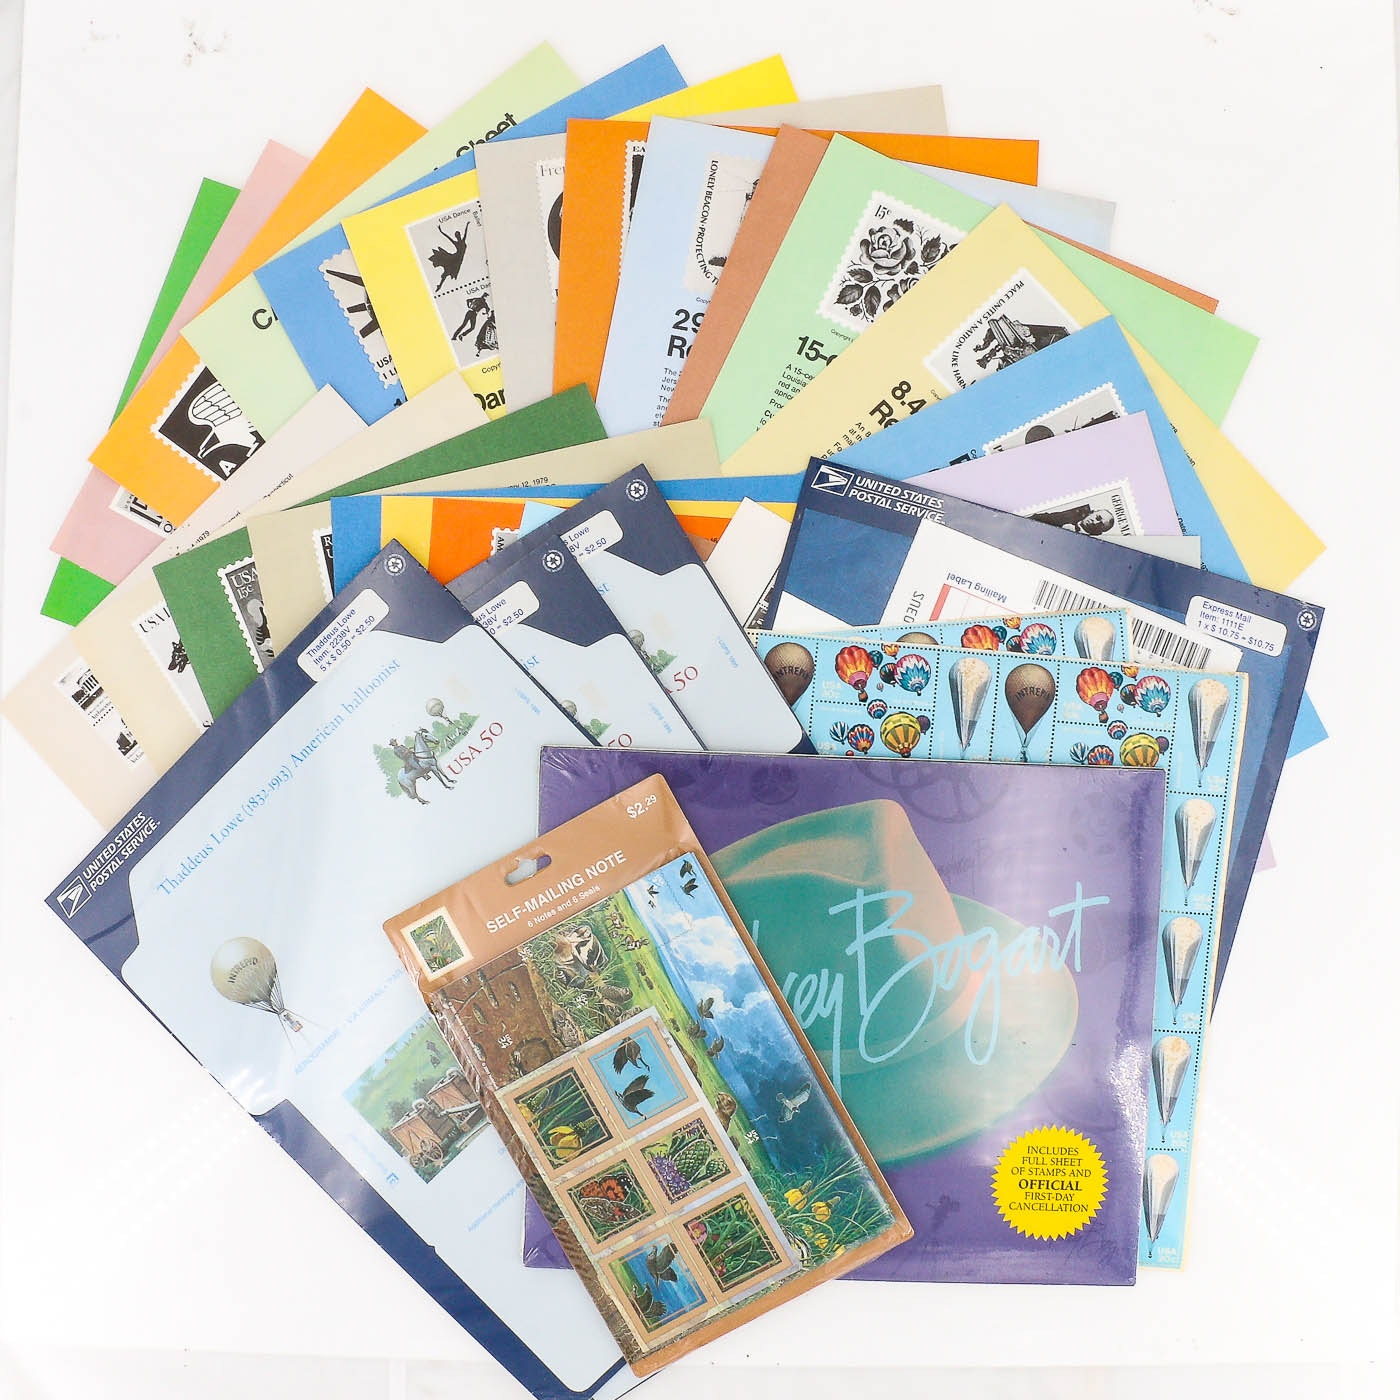 Group of U.S. Postage Stamps, Postage Covers, and Commemorative Stamp Collection